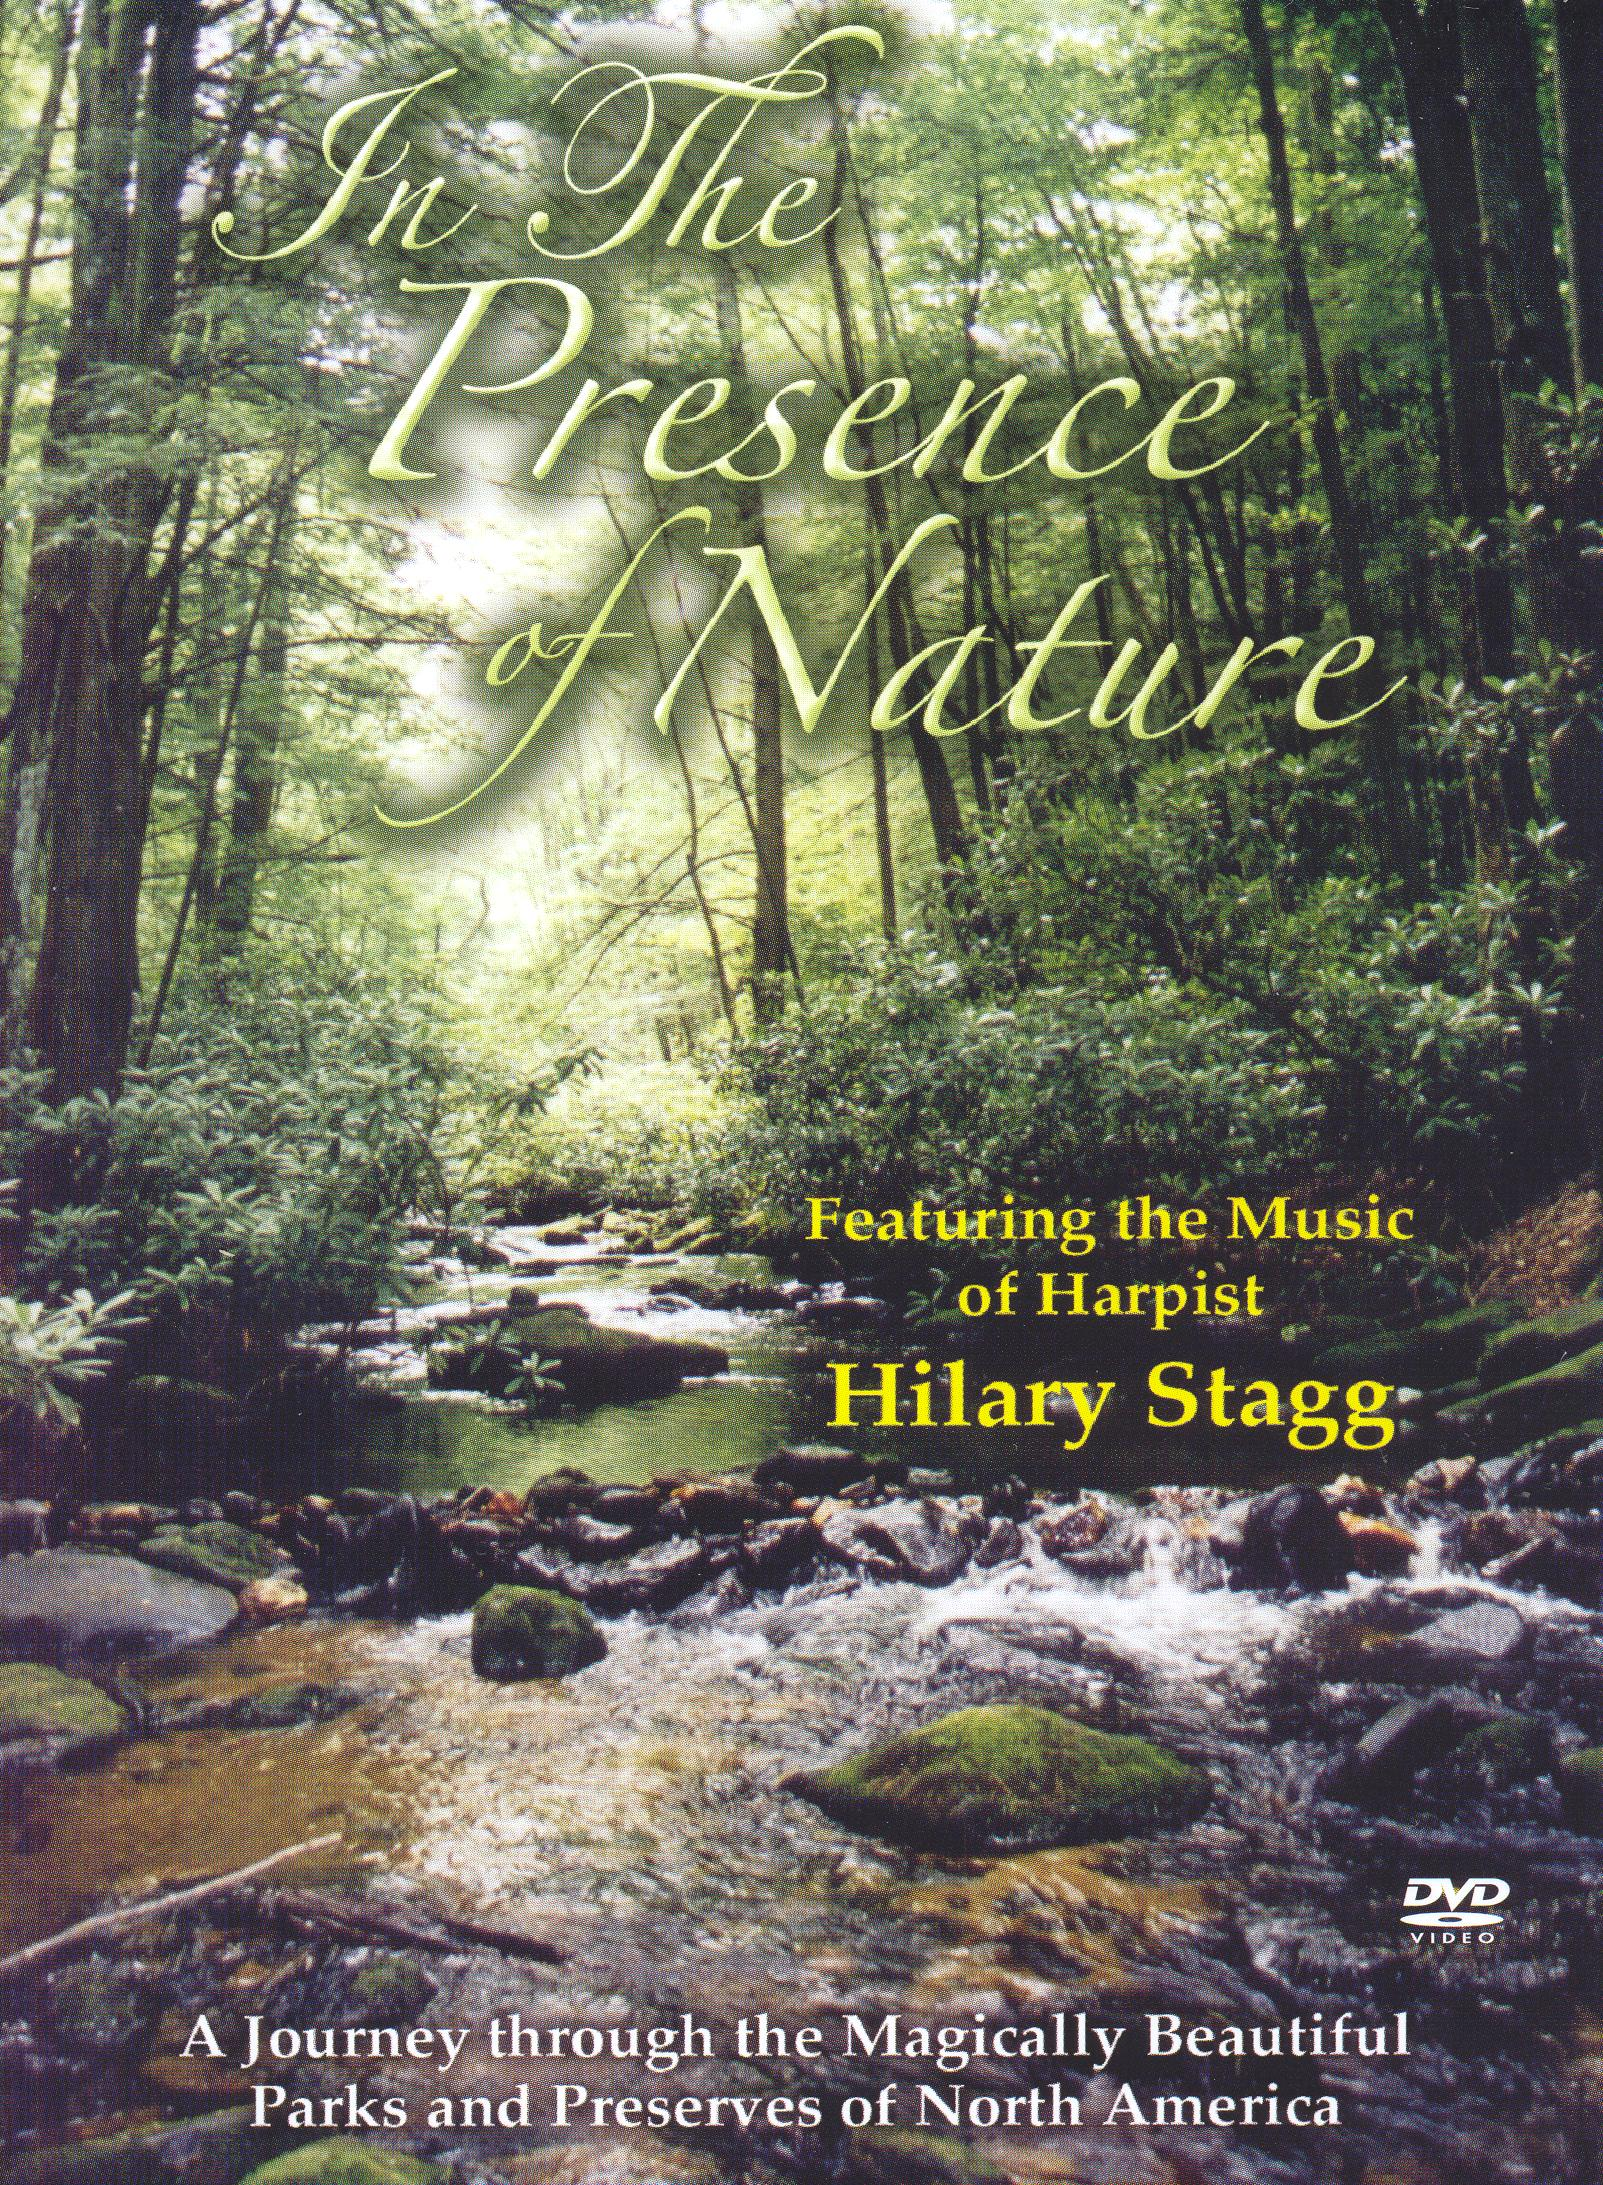 Hilary Stagg: In the Presence of Nature